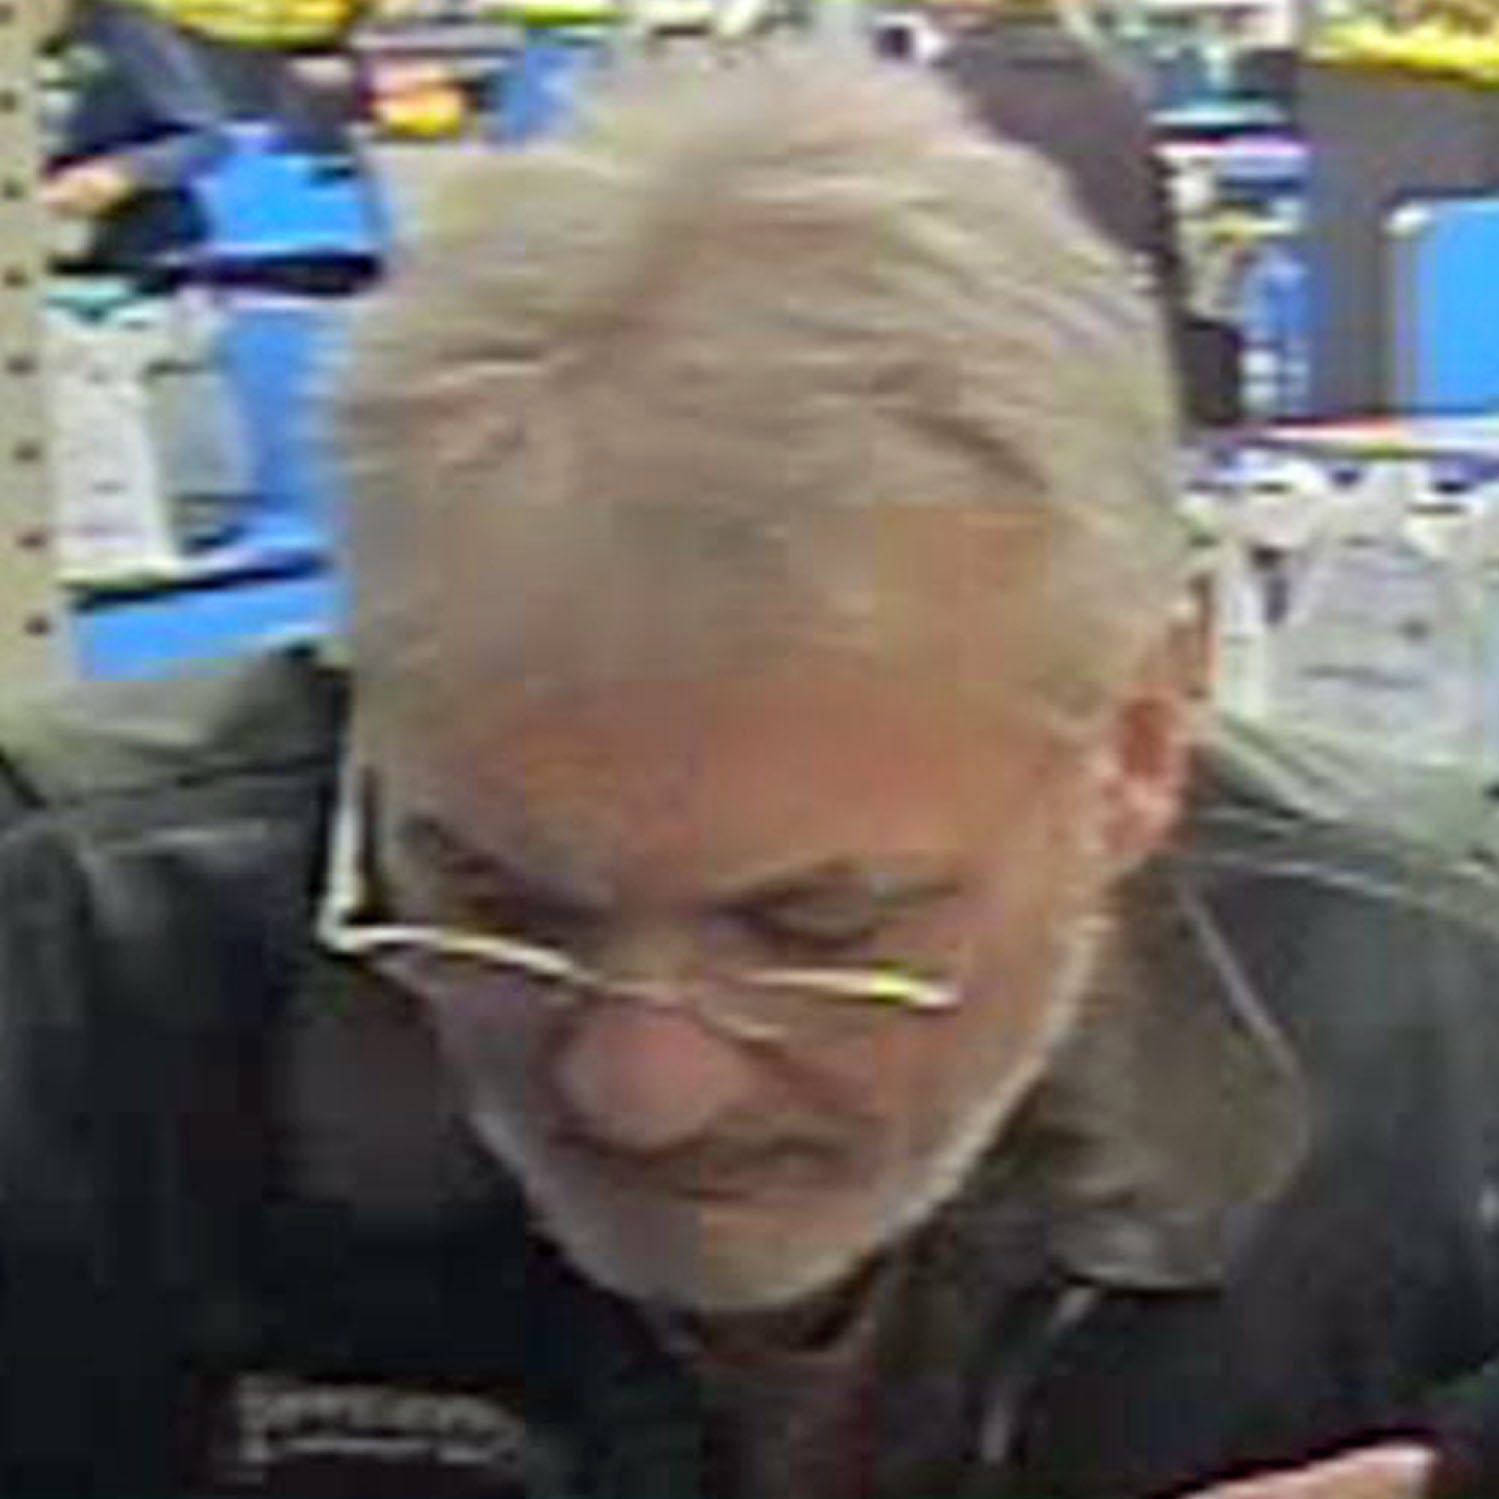 Salem Police seek public's help in identifying suspect at Walmart